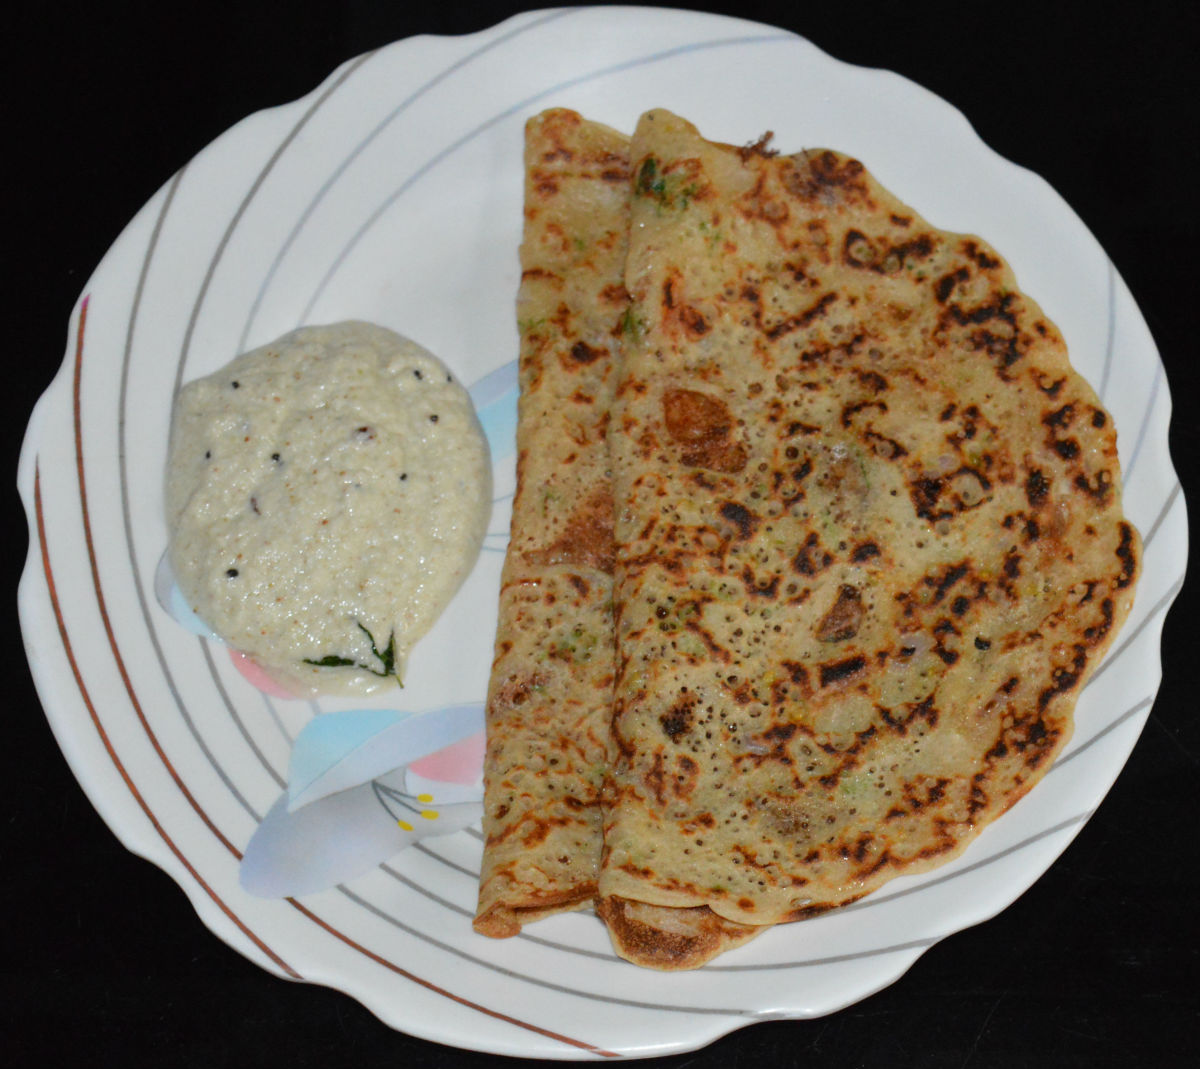 Spicy Wheat Flour Pancake Recipe